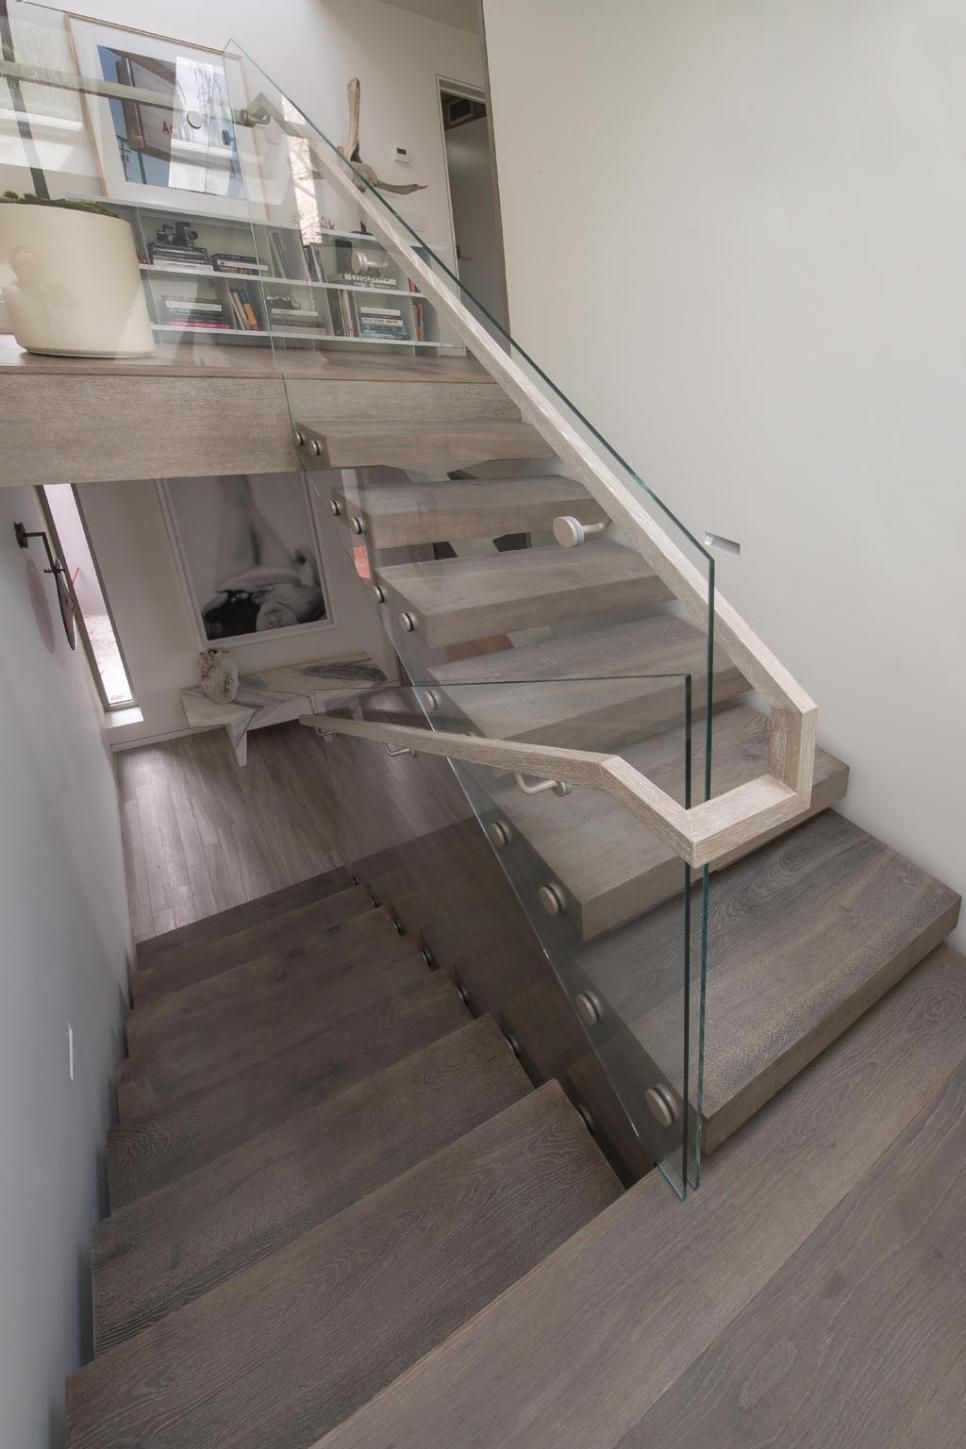 New Stair Railing   Glass Panel Topped With Metal (or Wood).